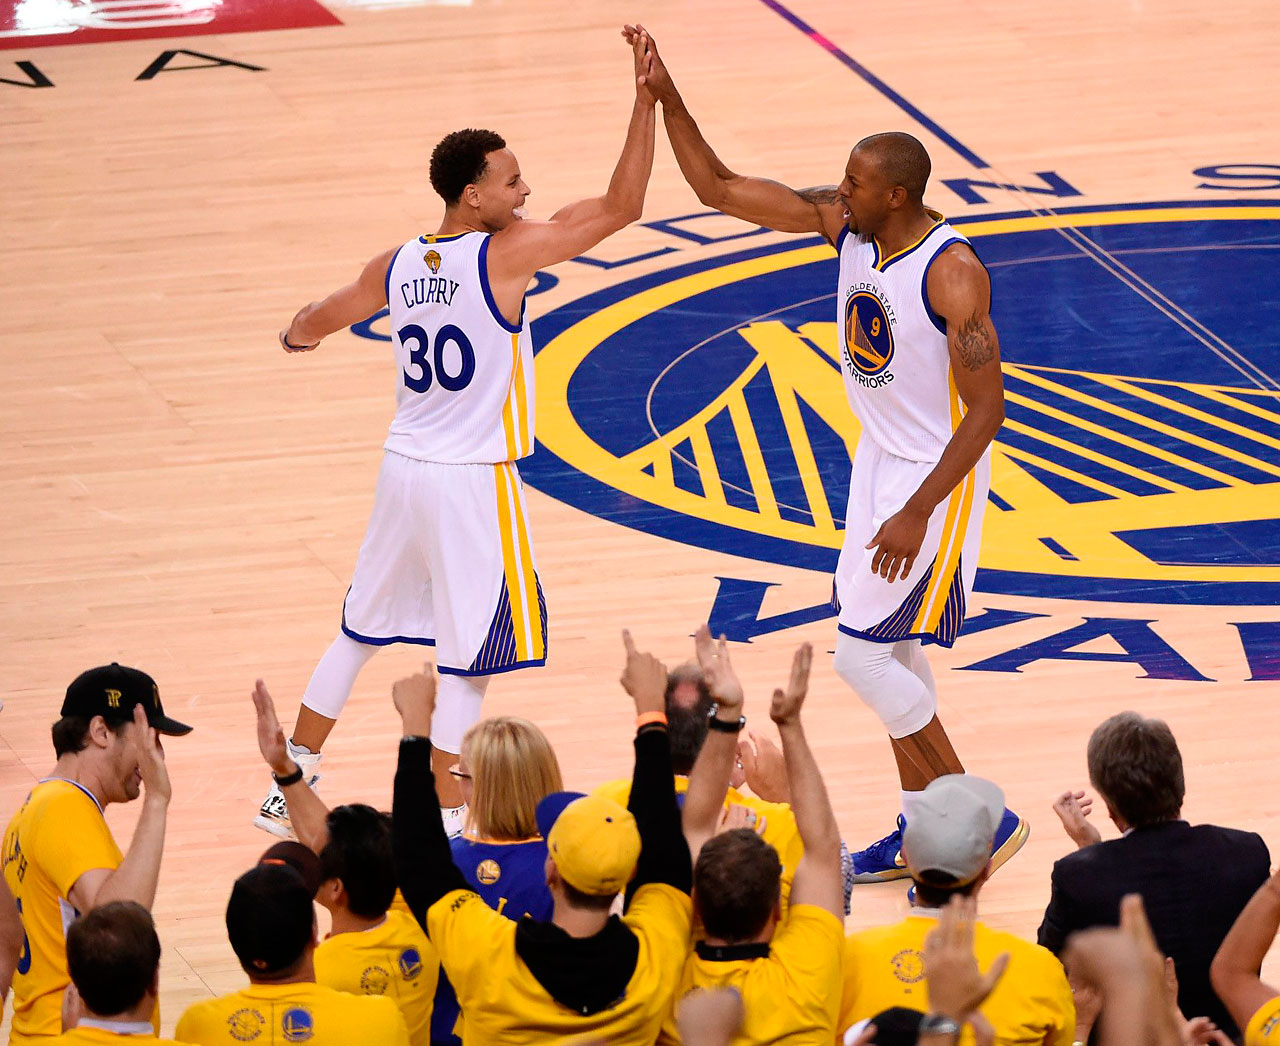 Andre Iguodala gets a high-five from Steph Curry after an offensive rebound and put back in which he also drew a foul. Iguodala finished with  14 points, eight rebounds and seven assists.